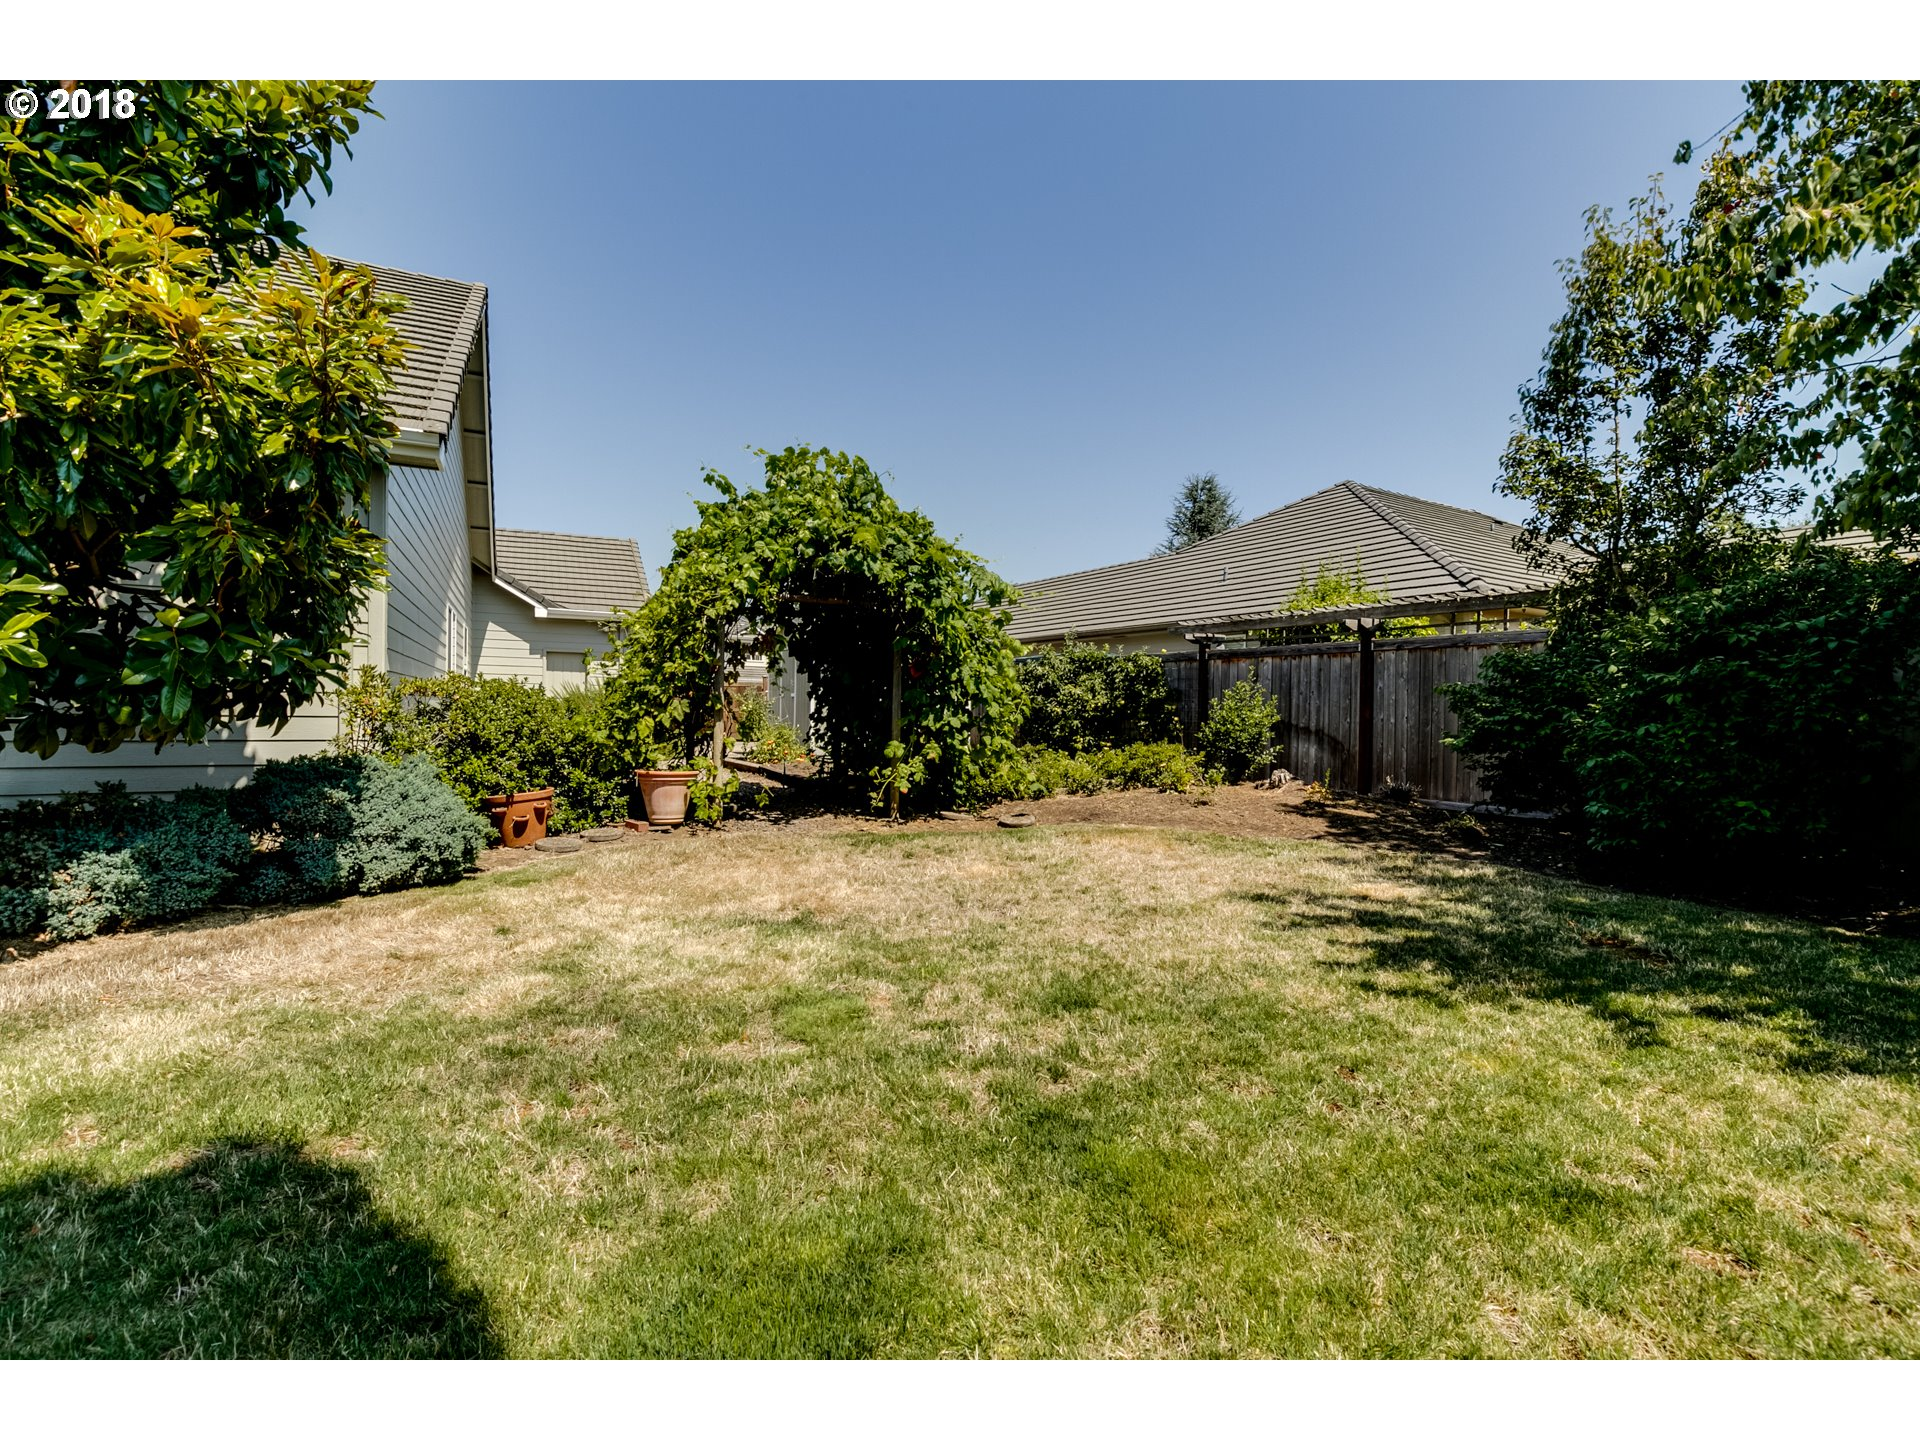 829 ROYALDEL LN Springfield, OR 97477 - MLS #: 18653920